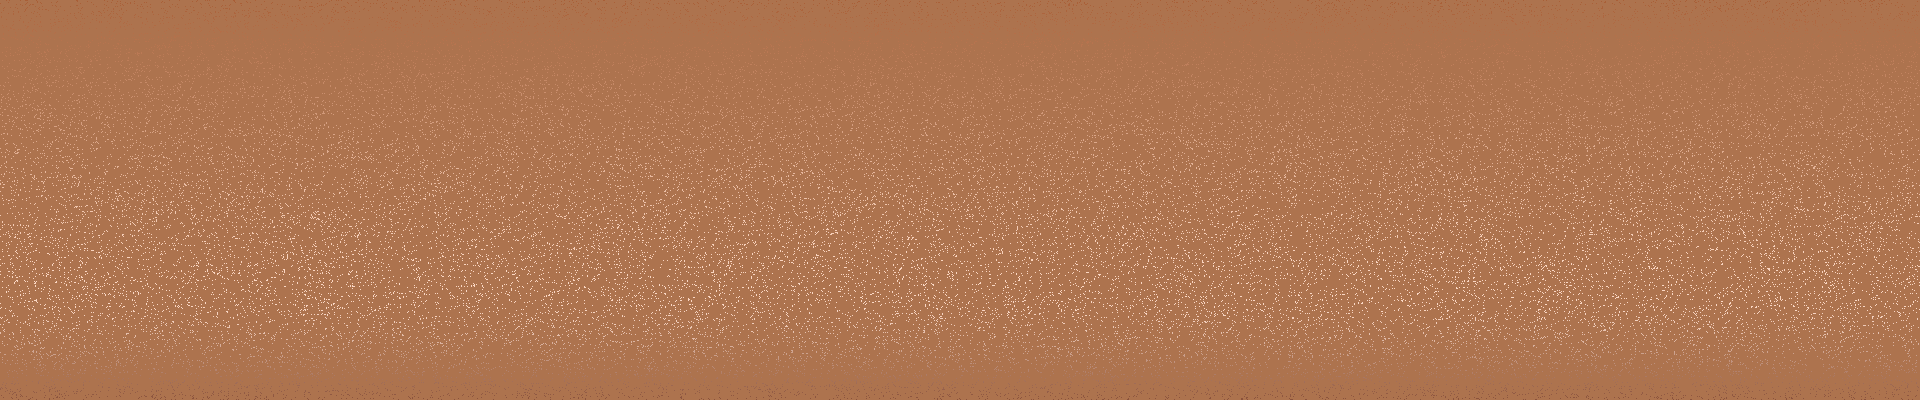 Sand_background2.png